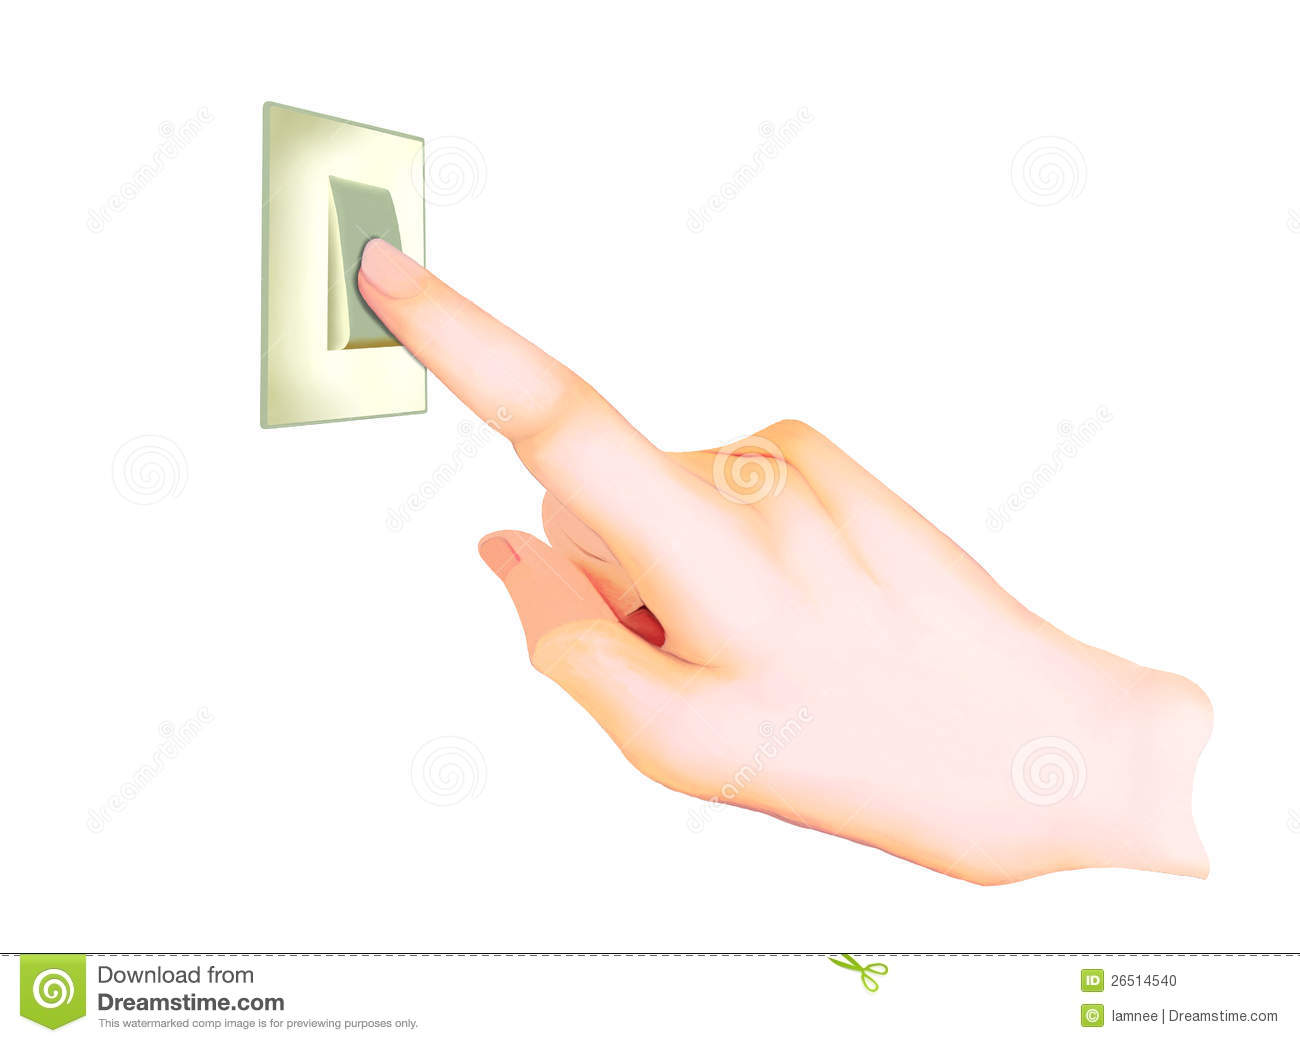 Light Switch Off Clipart A Hand Turning On Off A Light Switch Stock Photo Image